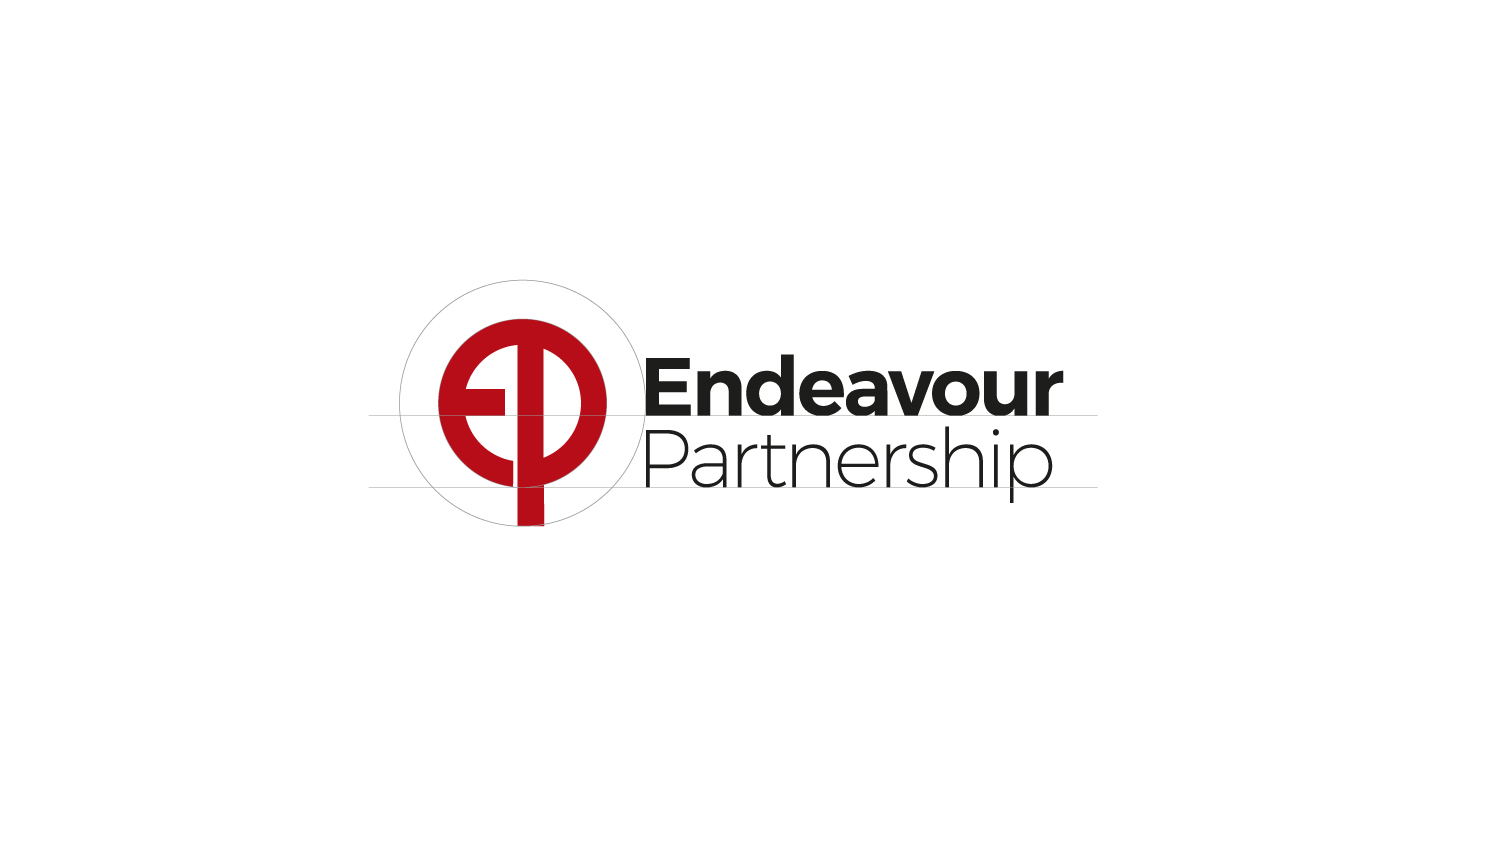 BetterBrandBuilder™ - CREATE Brand Identity - Endeavour Partnership